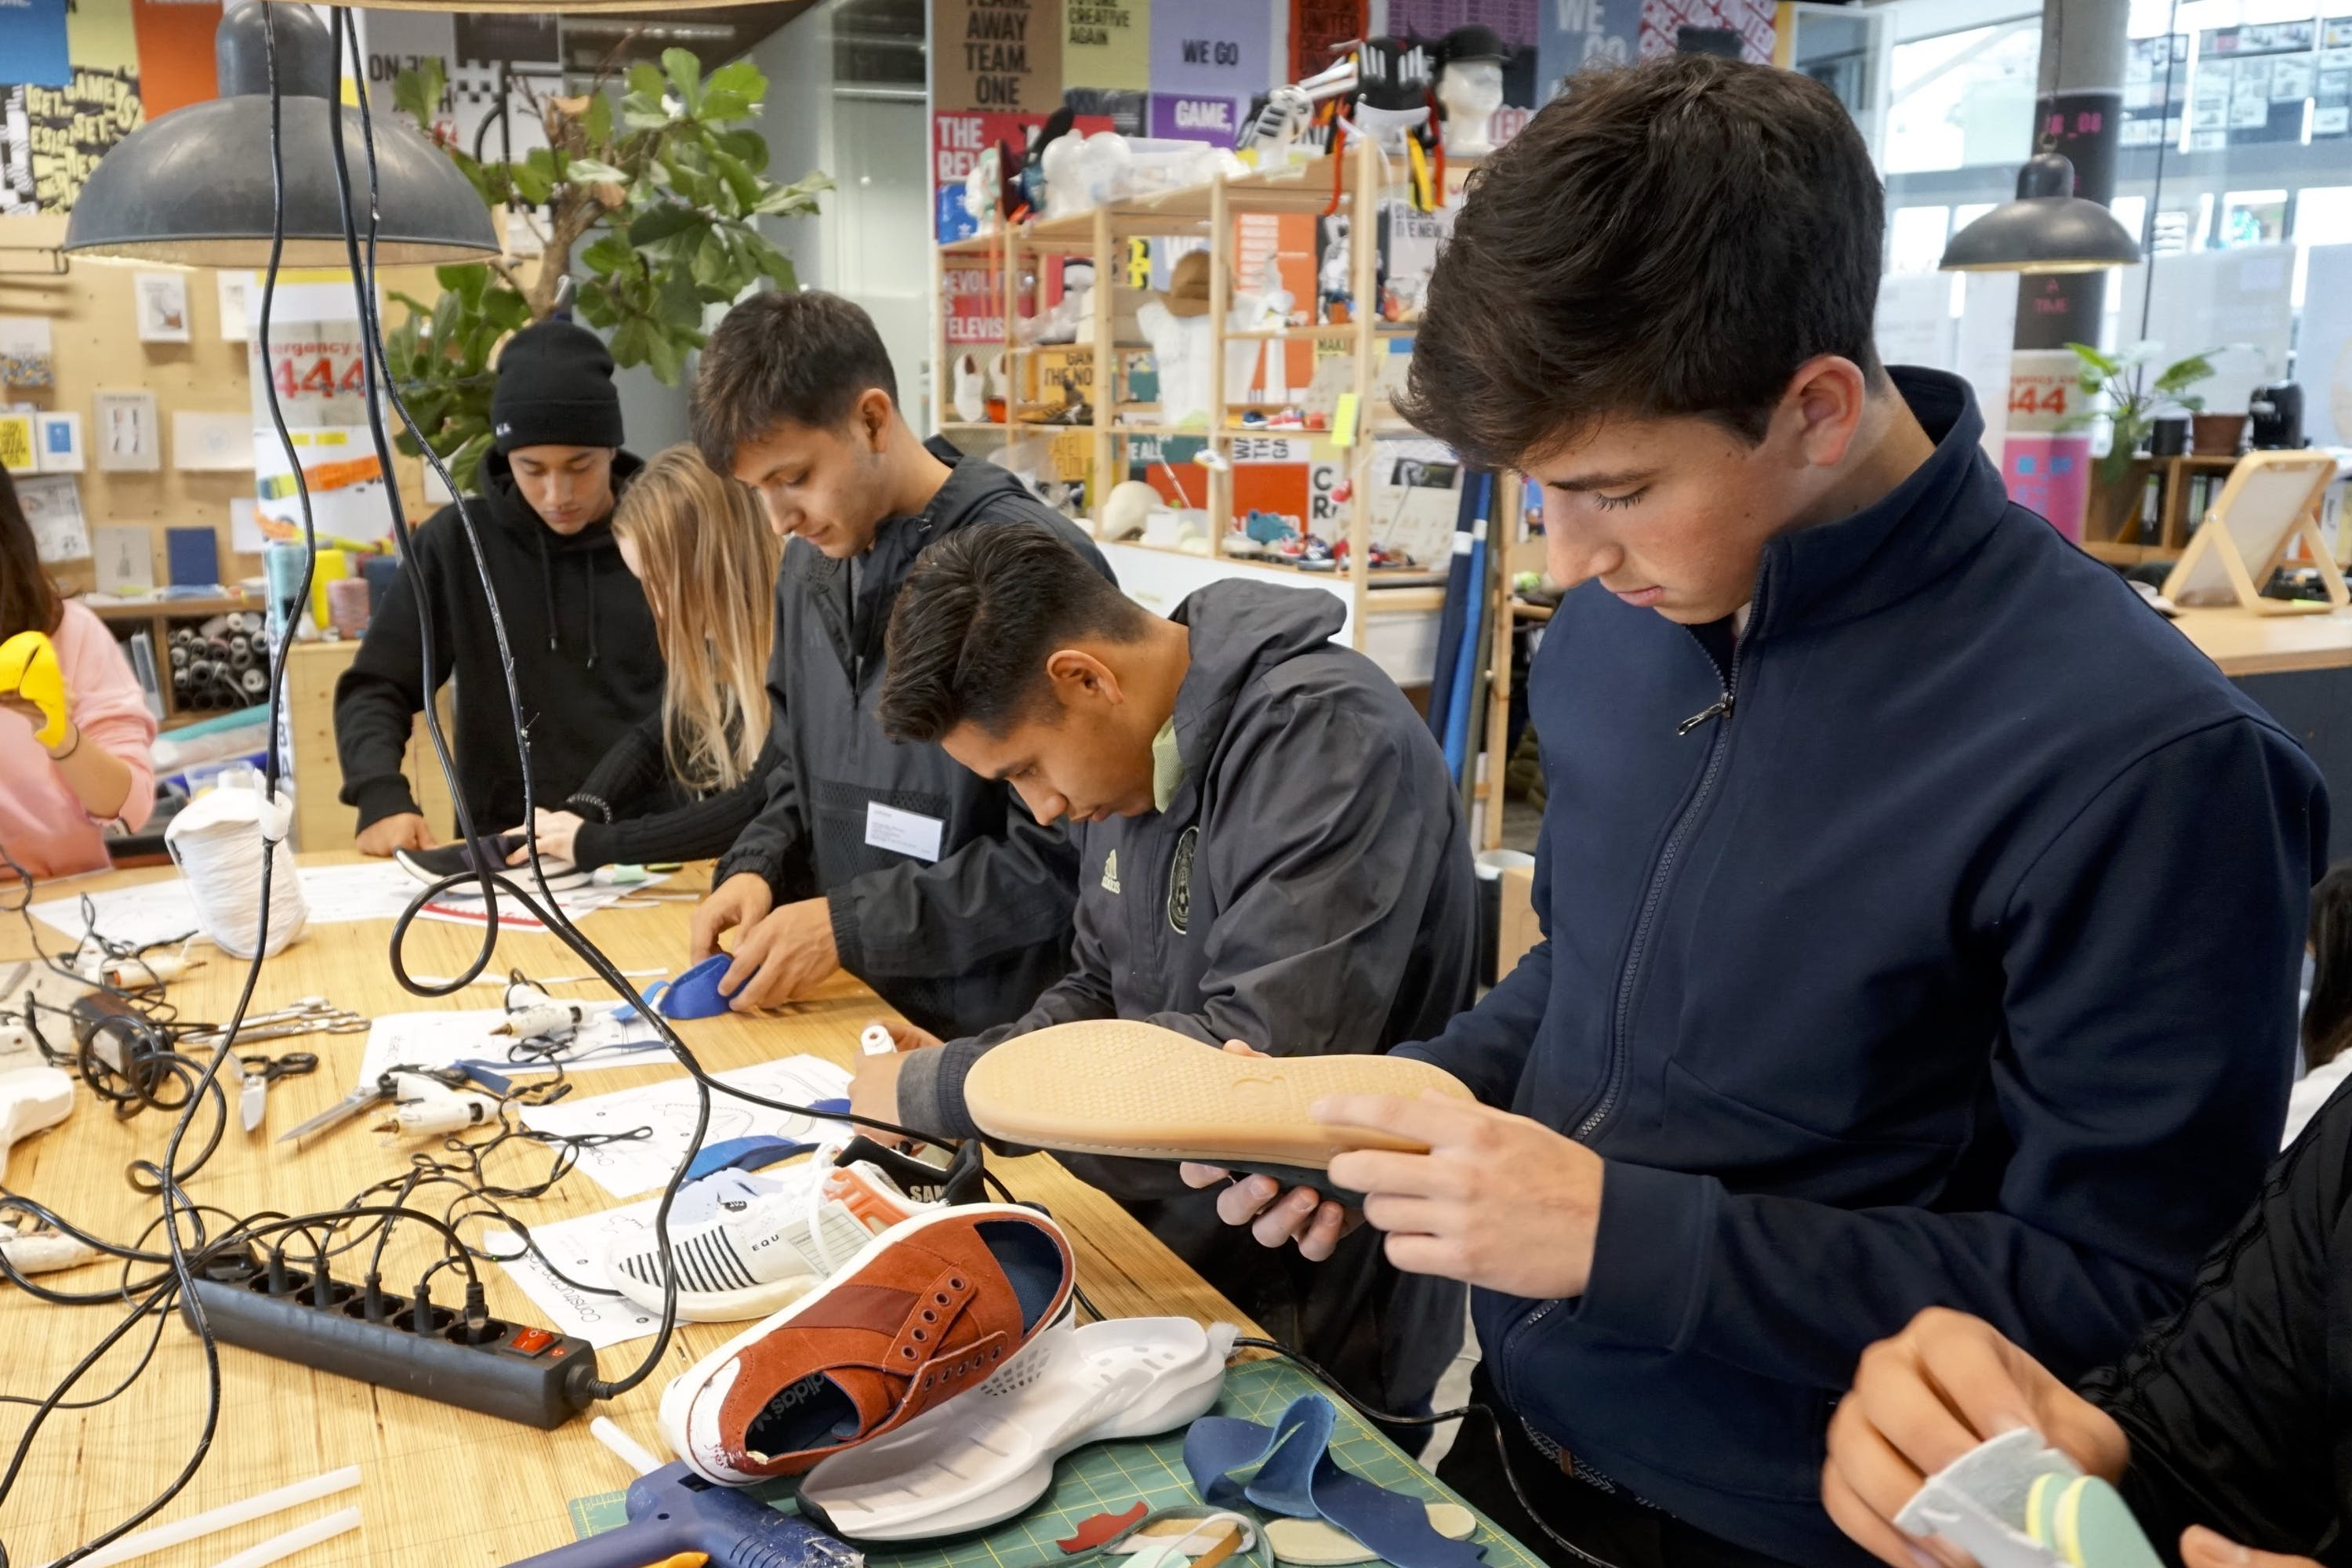 Male students standing around workshop table making shoe prototypes